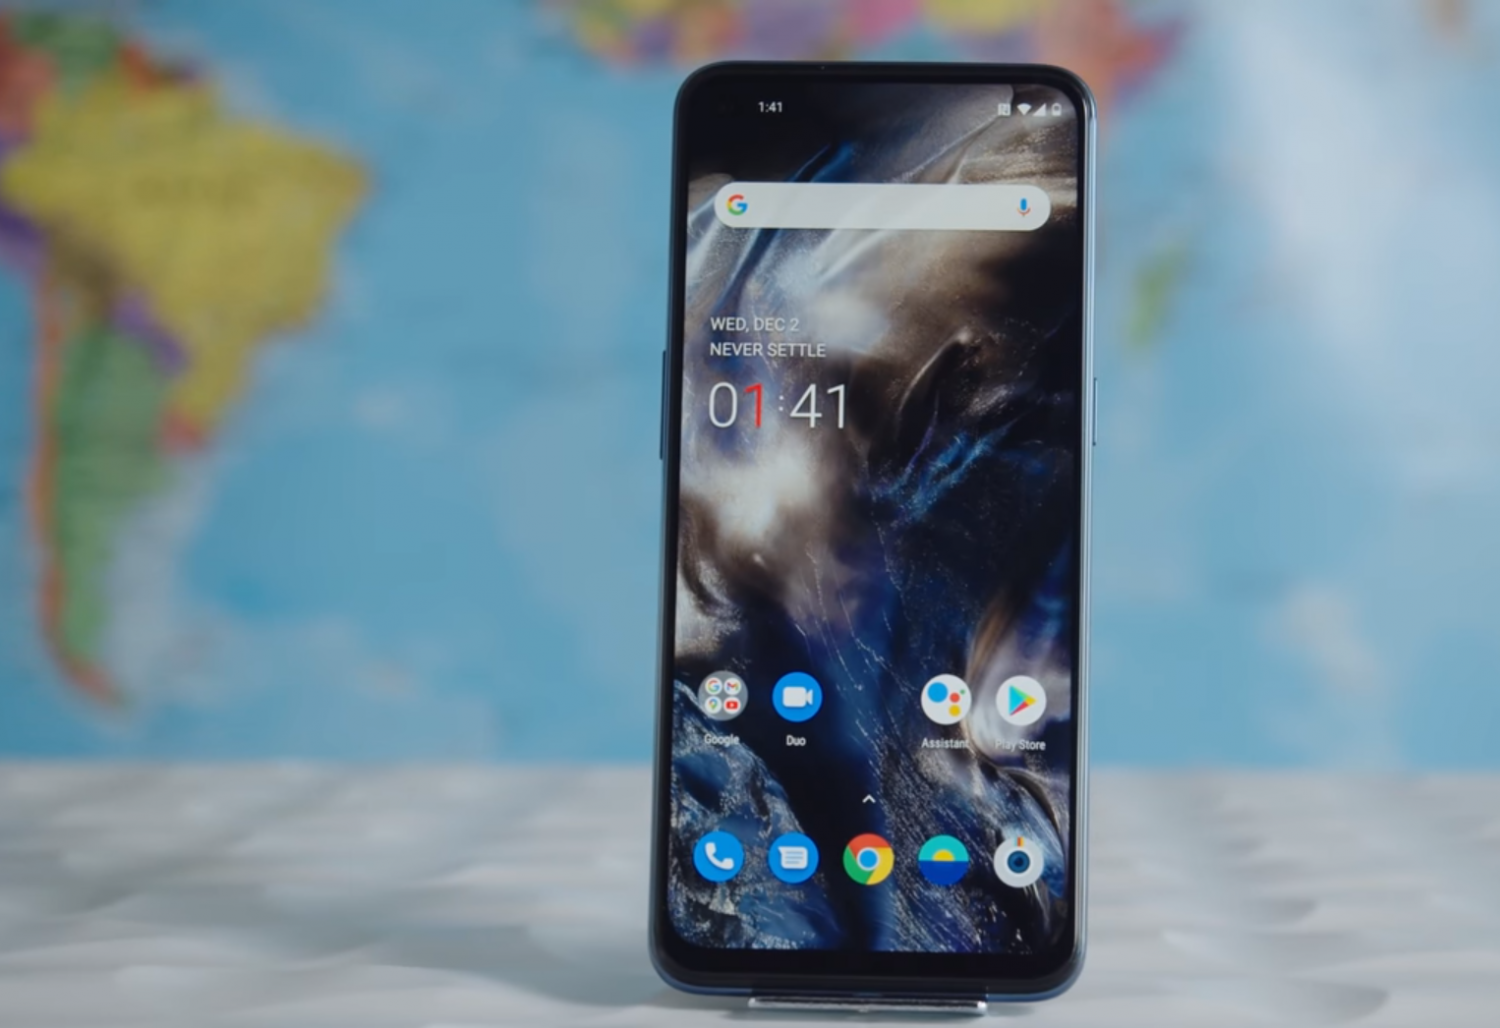 OnePlus Nord N10 5G Hailed as 'Best Budget Phone' of 2021: What Makes It Different?